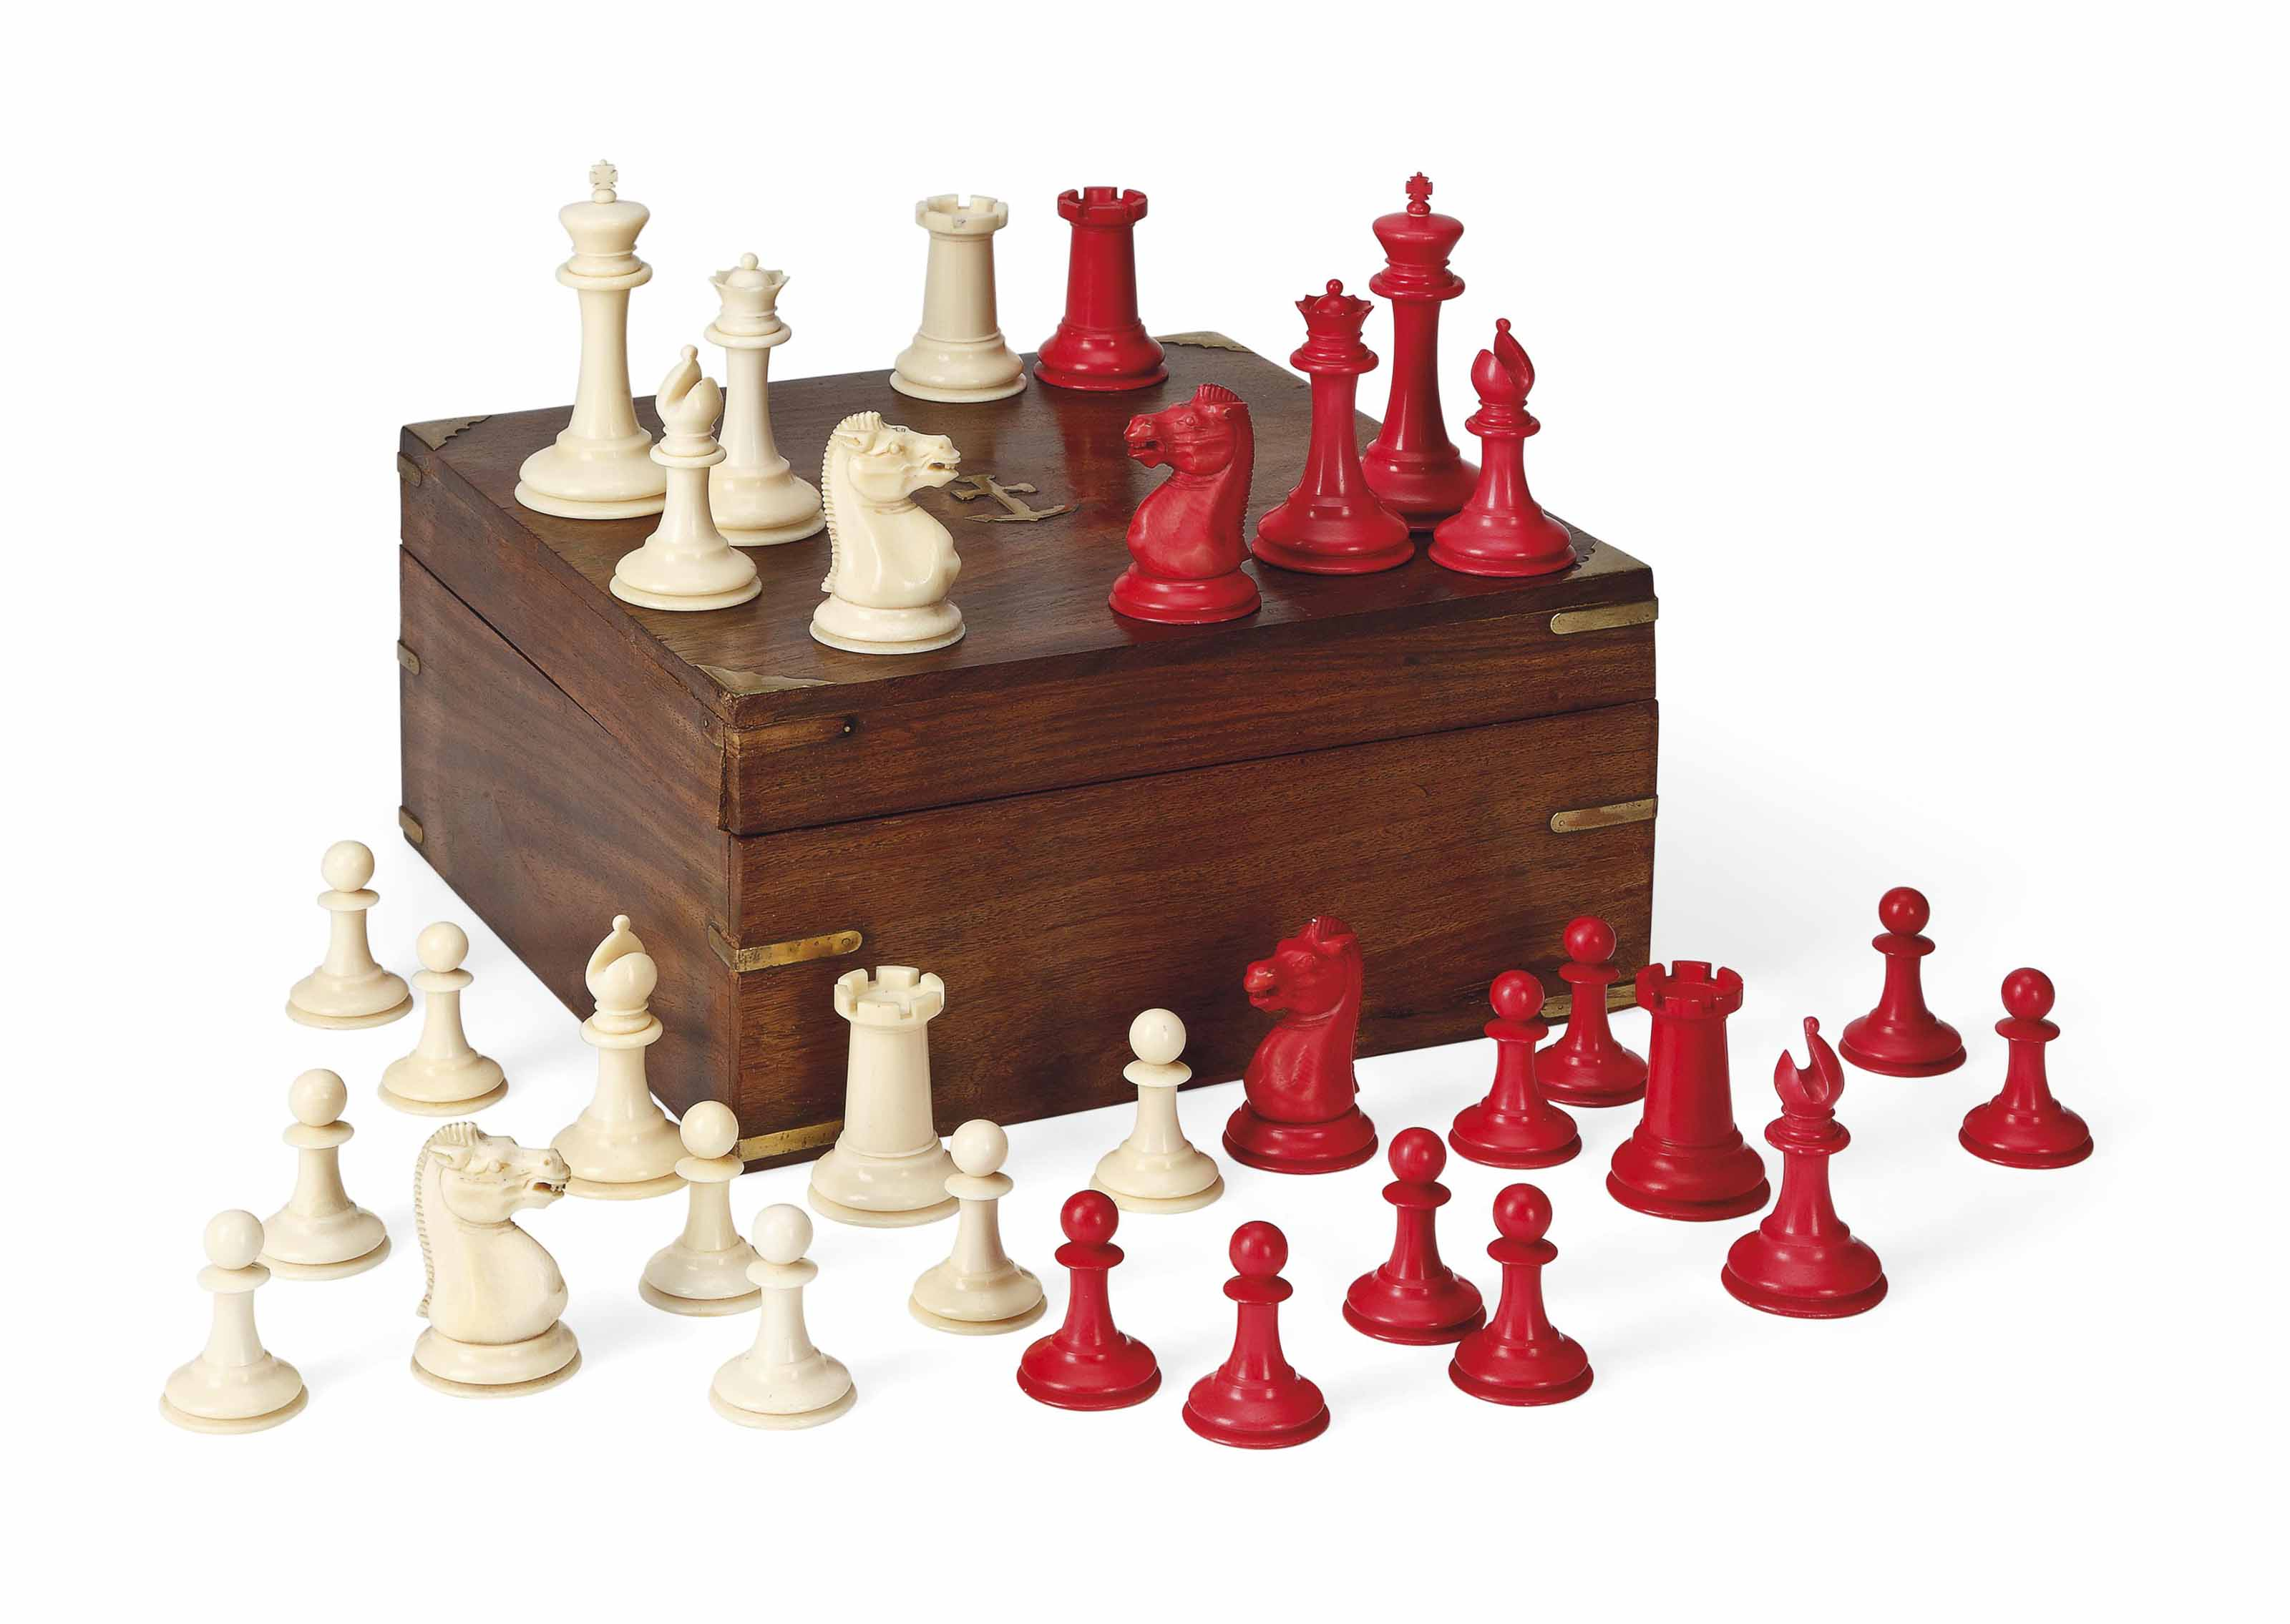 A VICTORIAN IVORY 'STAUNTON' PATTERN CHESS SET